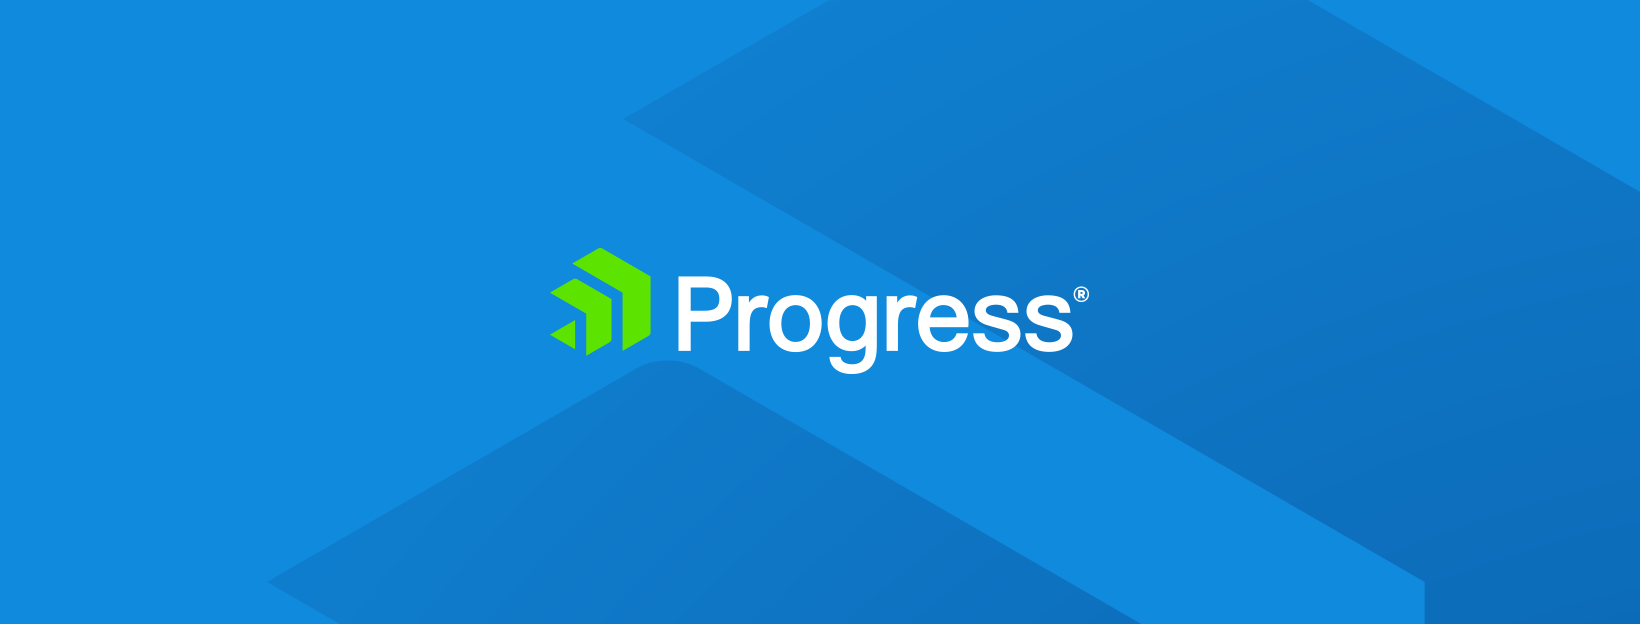 Screenshot of Progress logo banner